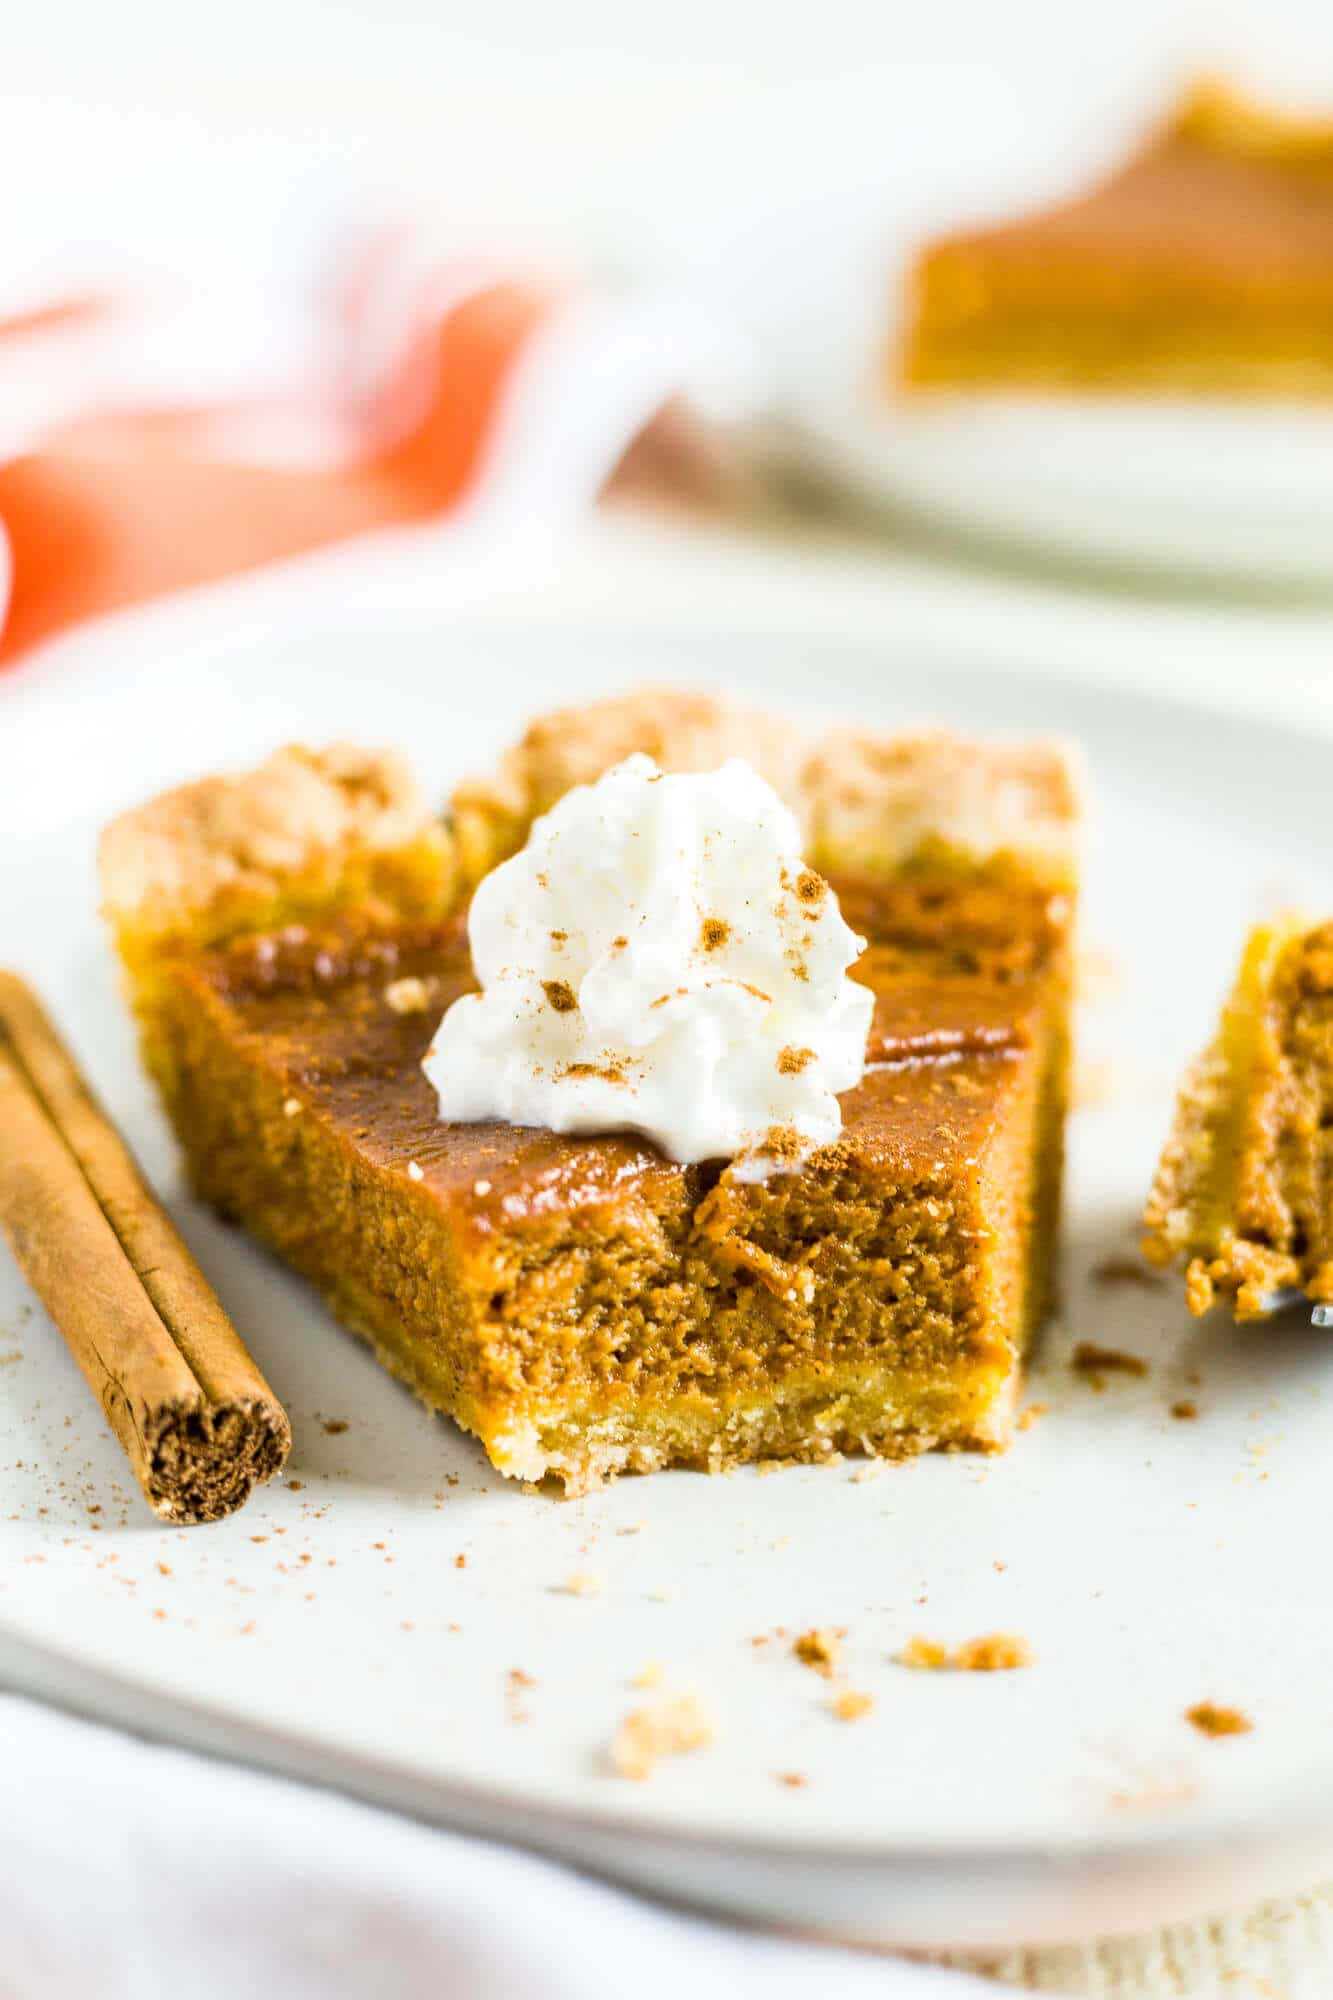 dairy free pumpkin pie on a white plate with coconut whipped cream and a bite taken out